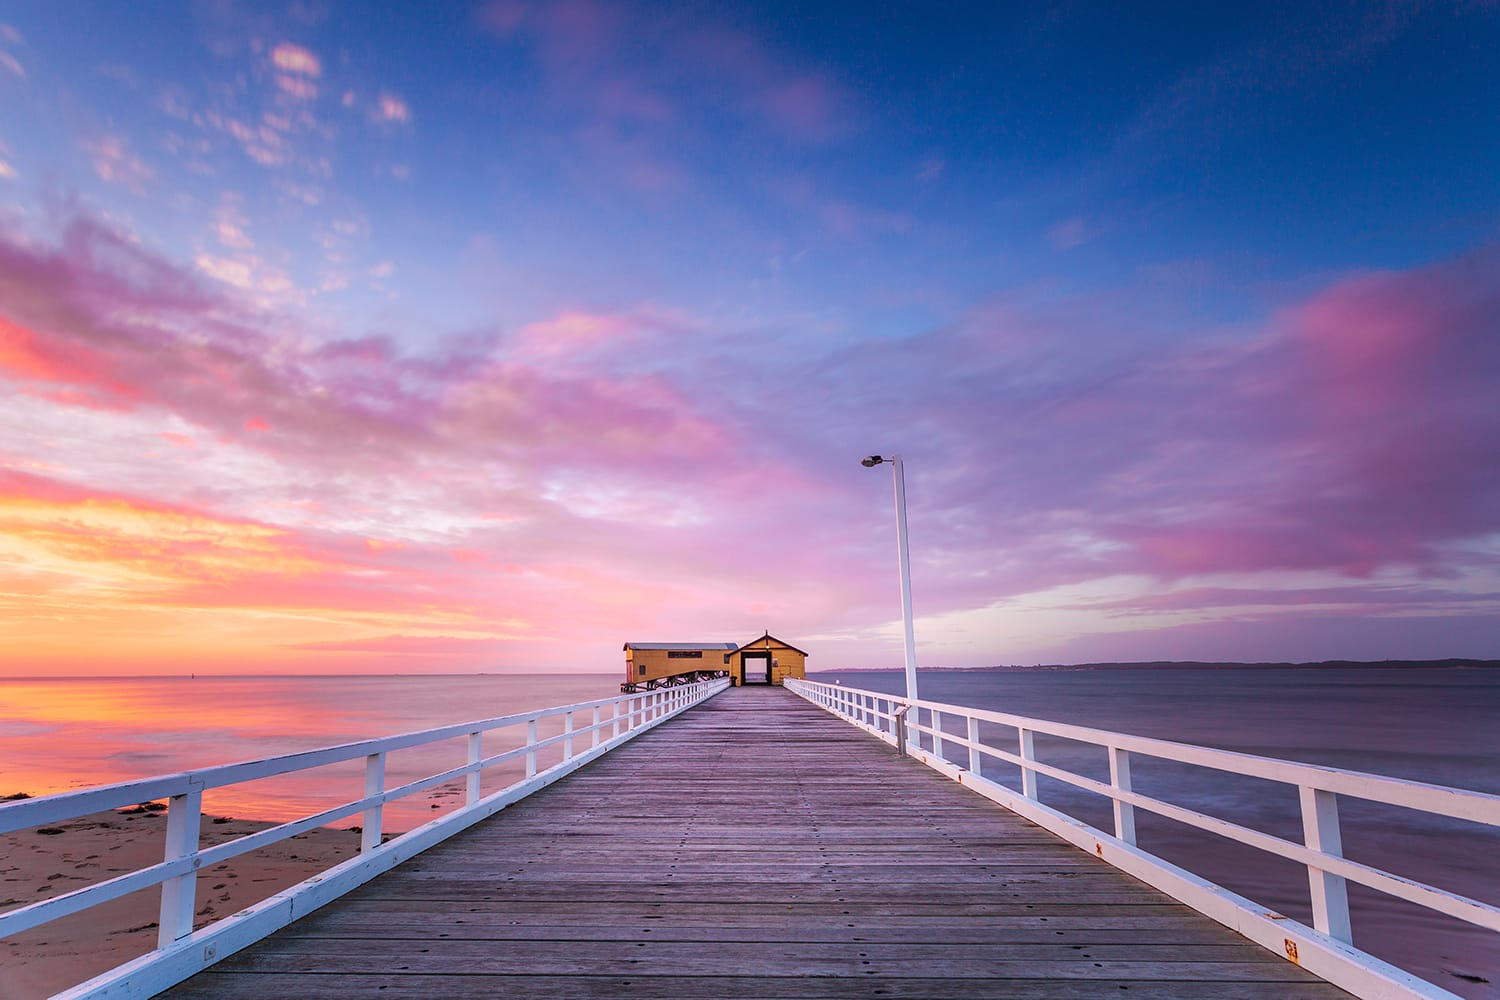 Beautiful Sunrise At Queenscliff Pier, Victoria, Australia.